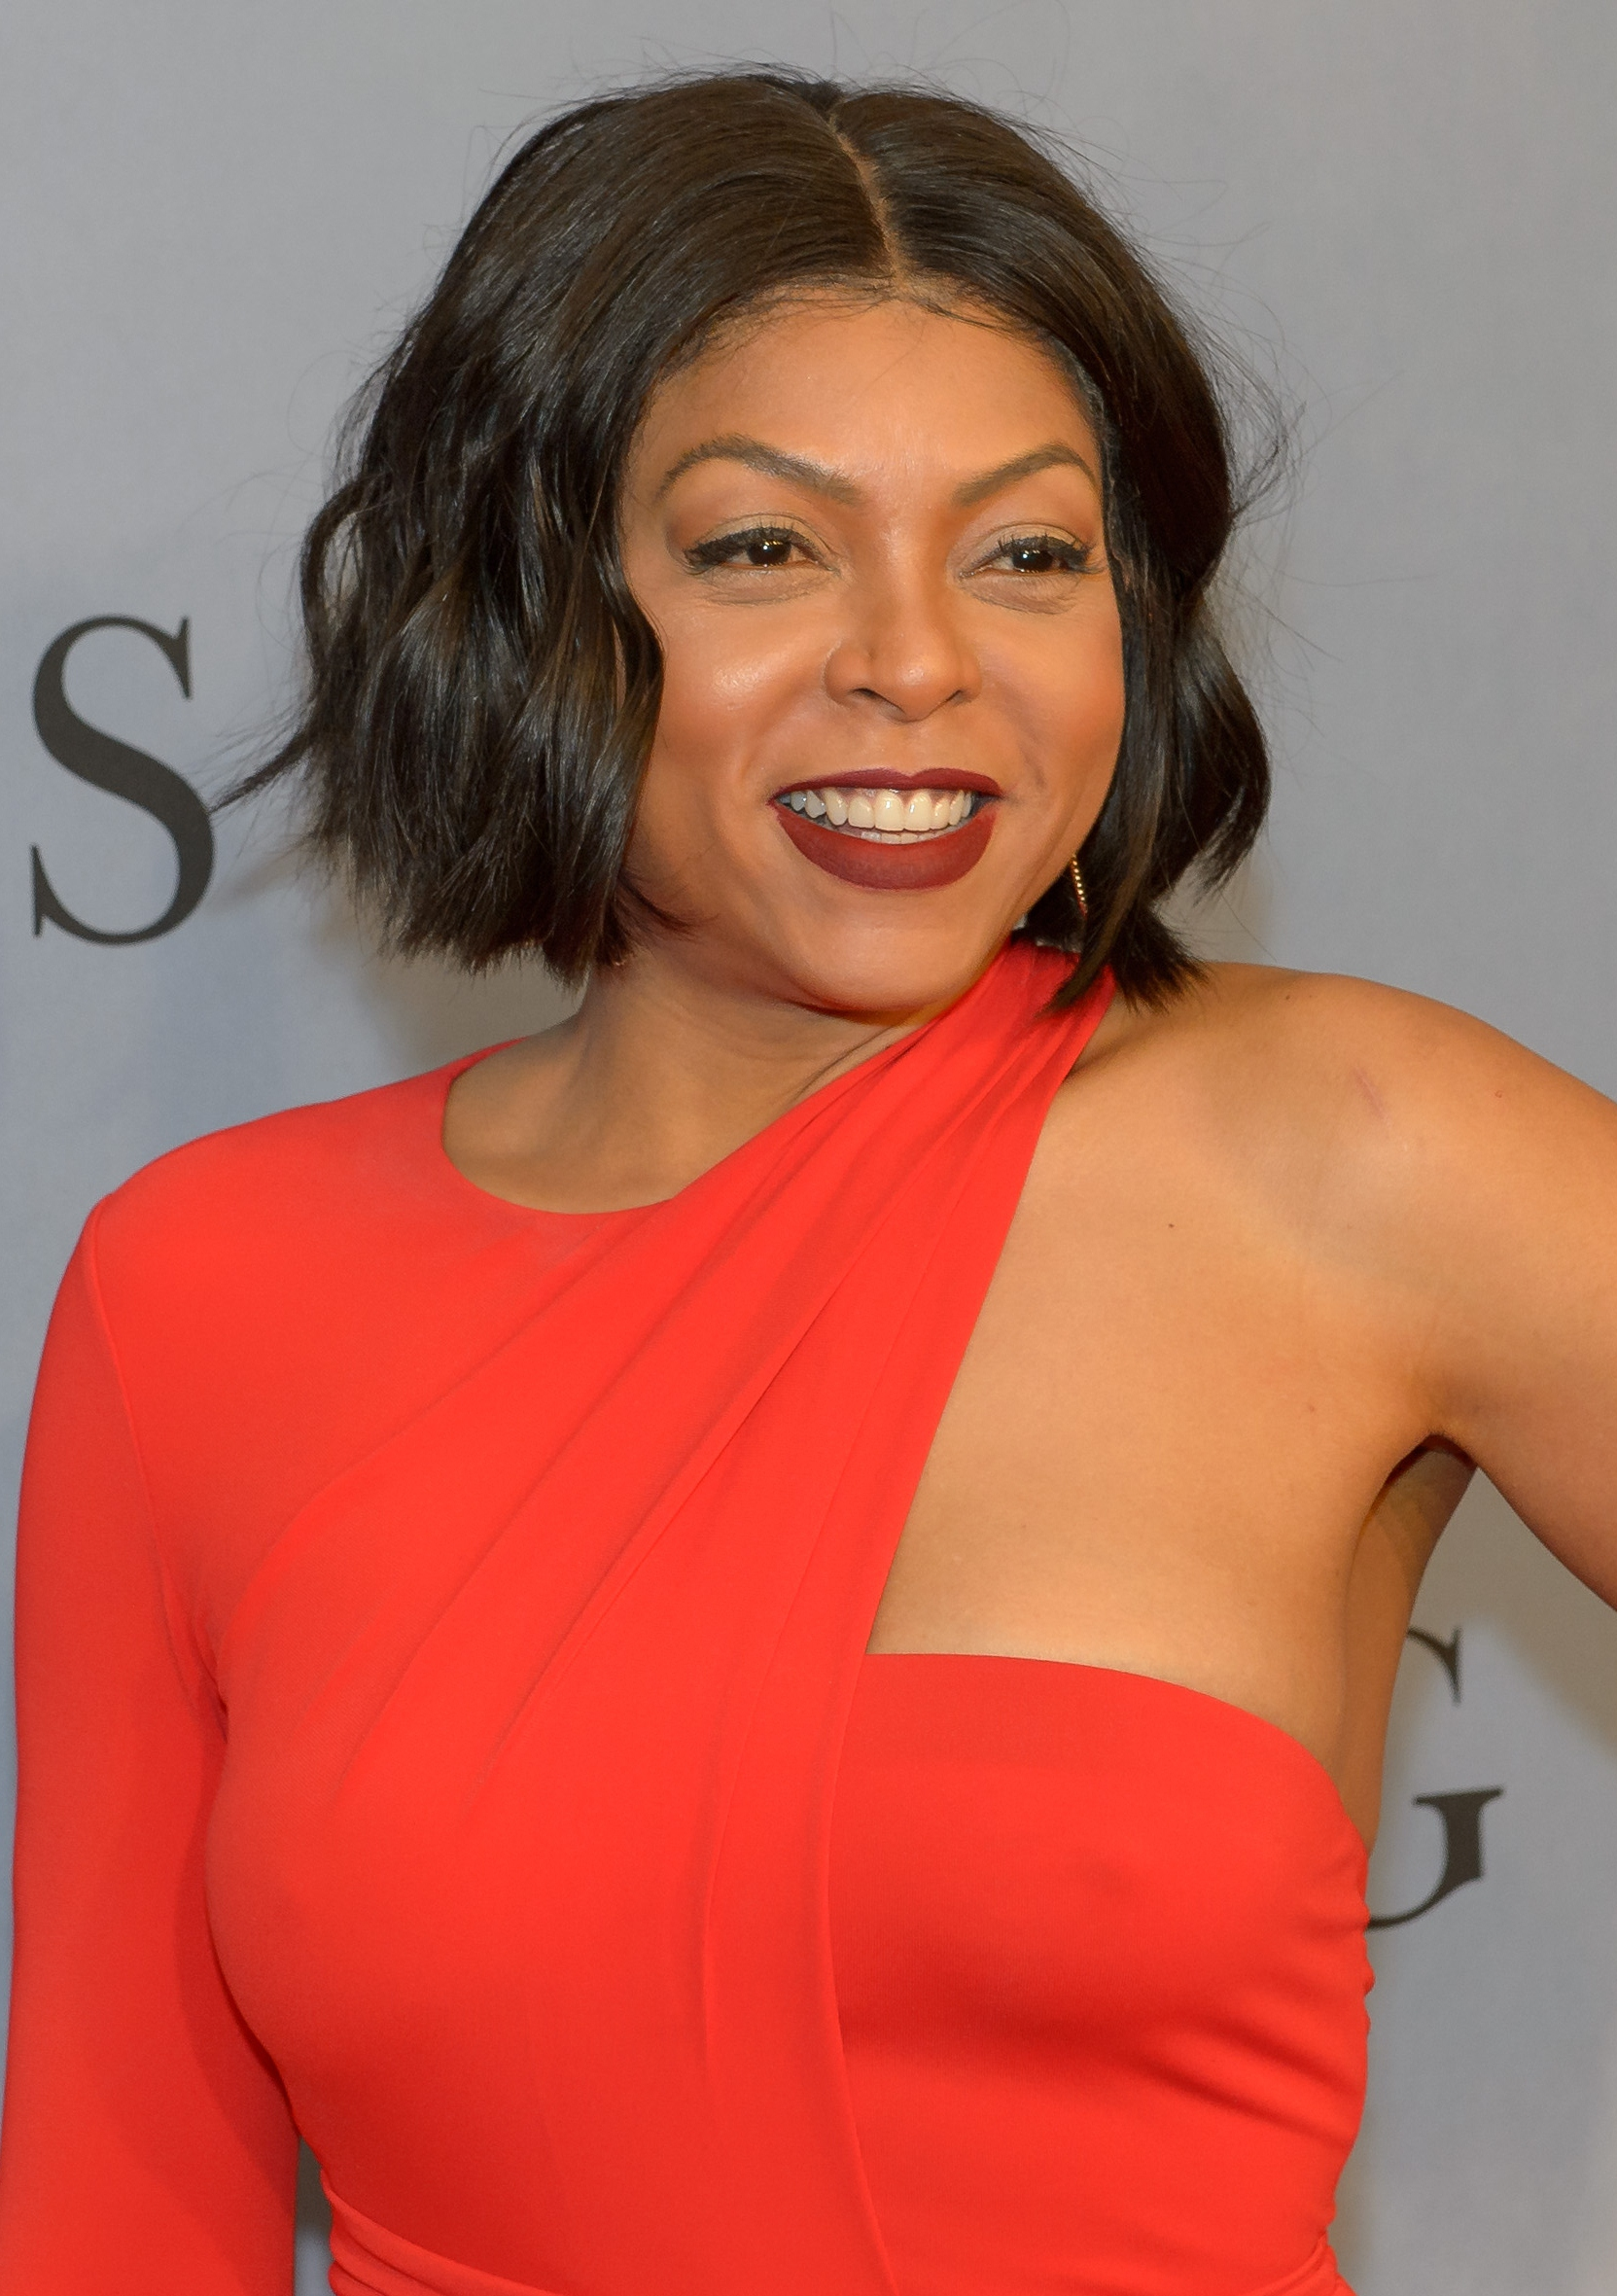 The 47-year old daughter of father Boris Henson and mother Bernice Gordon Taraji P. Henson in 2018 photo. Taraji P. Henson earned a  million dollar salary - leaving the net worth at 6 million in 2018